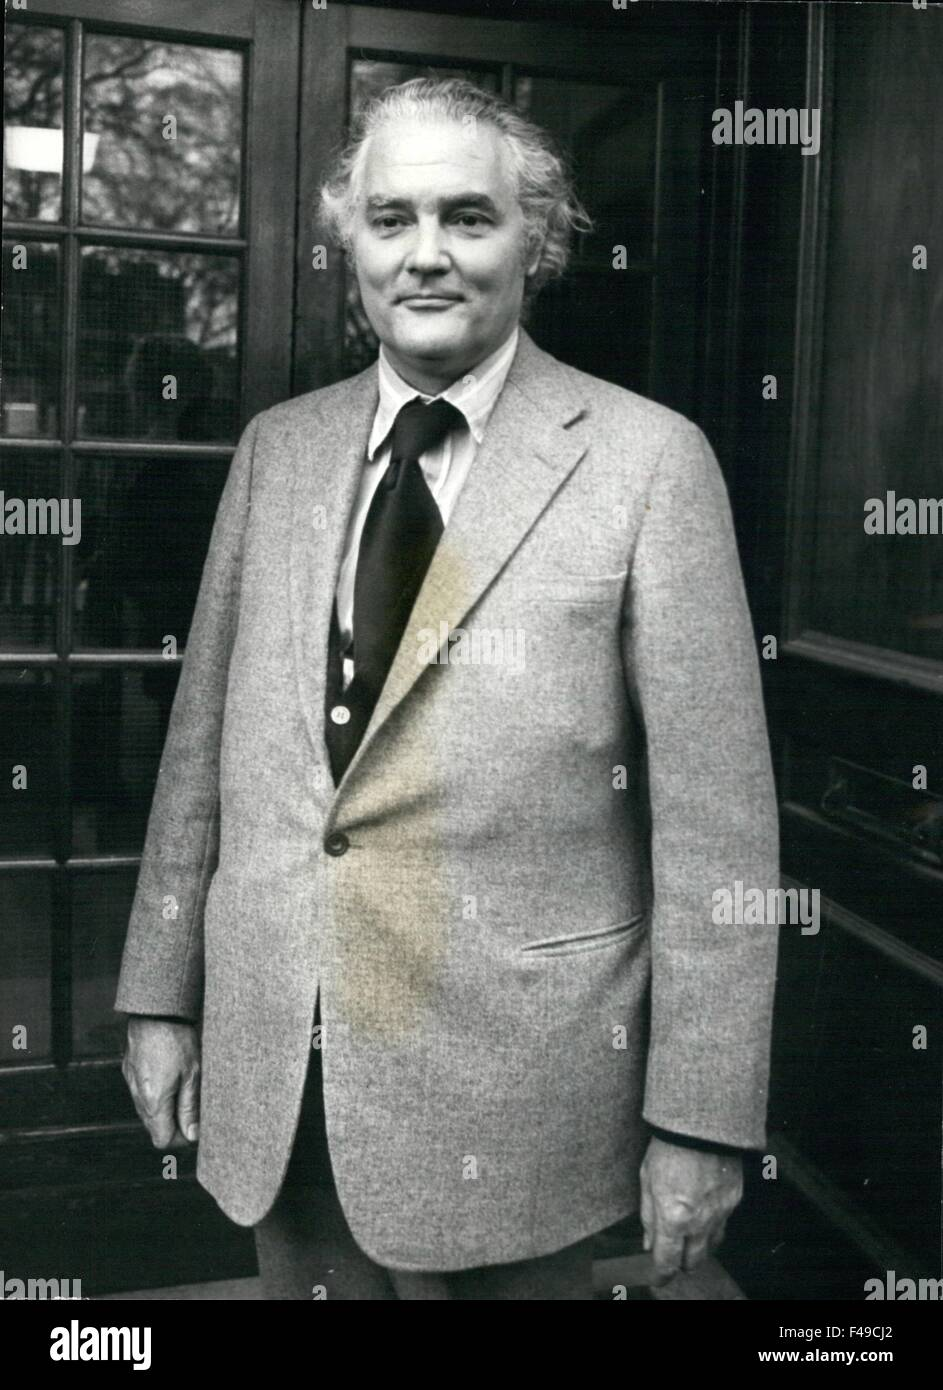 1976 - Picture Shows: Mr. Vere Harmsworth (N.P.A.) of associated Newspapers, arriving for the meeting. © Keystone - Stock Image